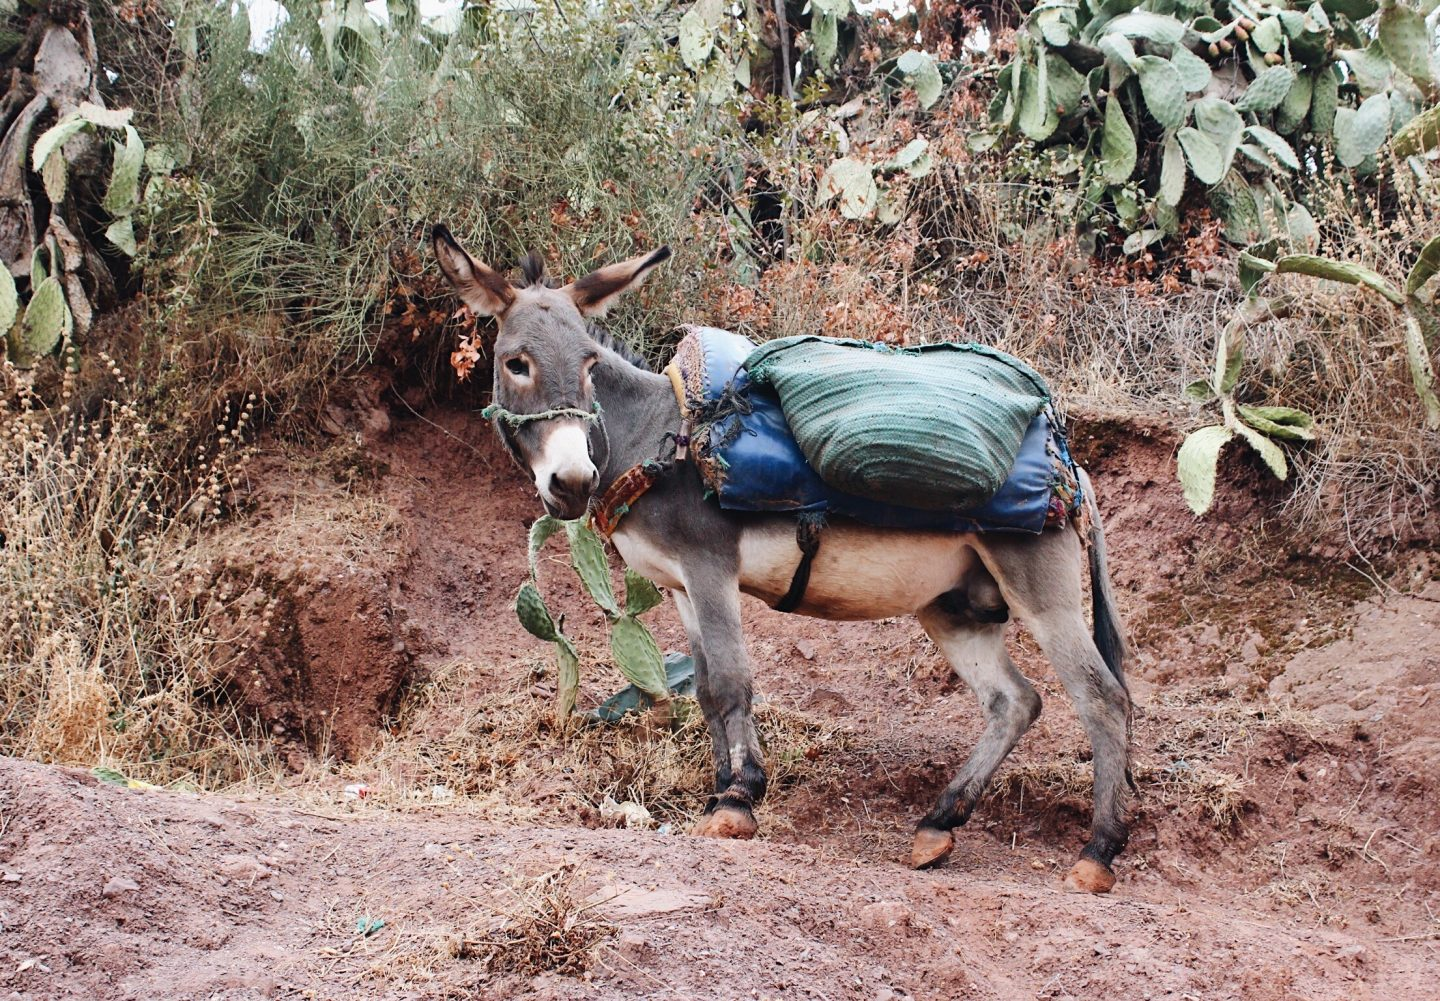 A local donkey in the Berber neighborhood!